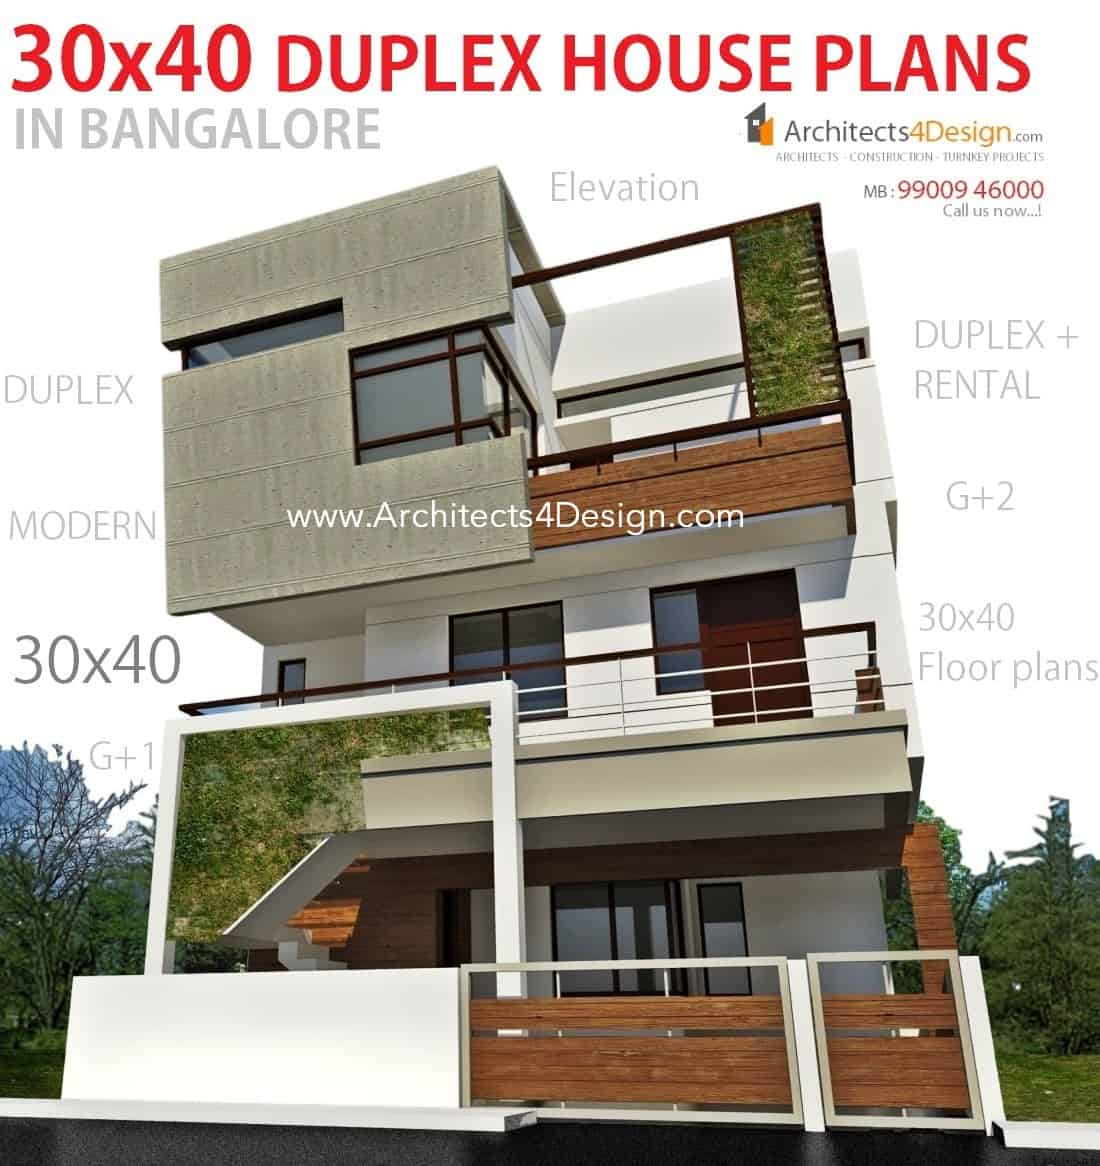 Top 50 Modern House Designs Ever Built: 30x40 HOUSE PLANS In Bangalore For G+1 G+2 G+3 G+4 Floors